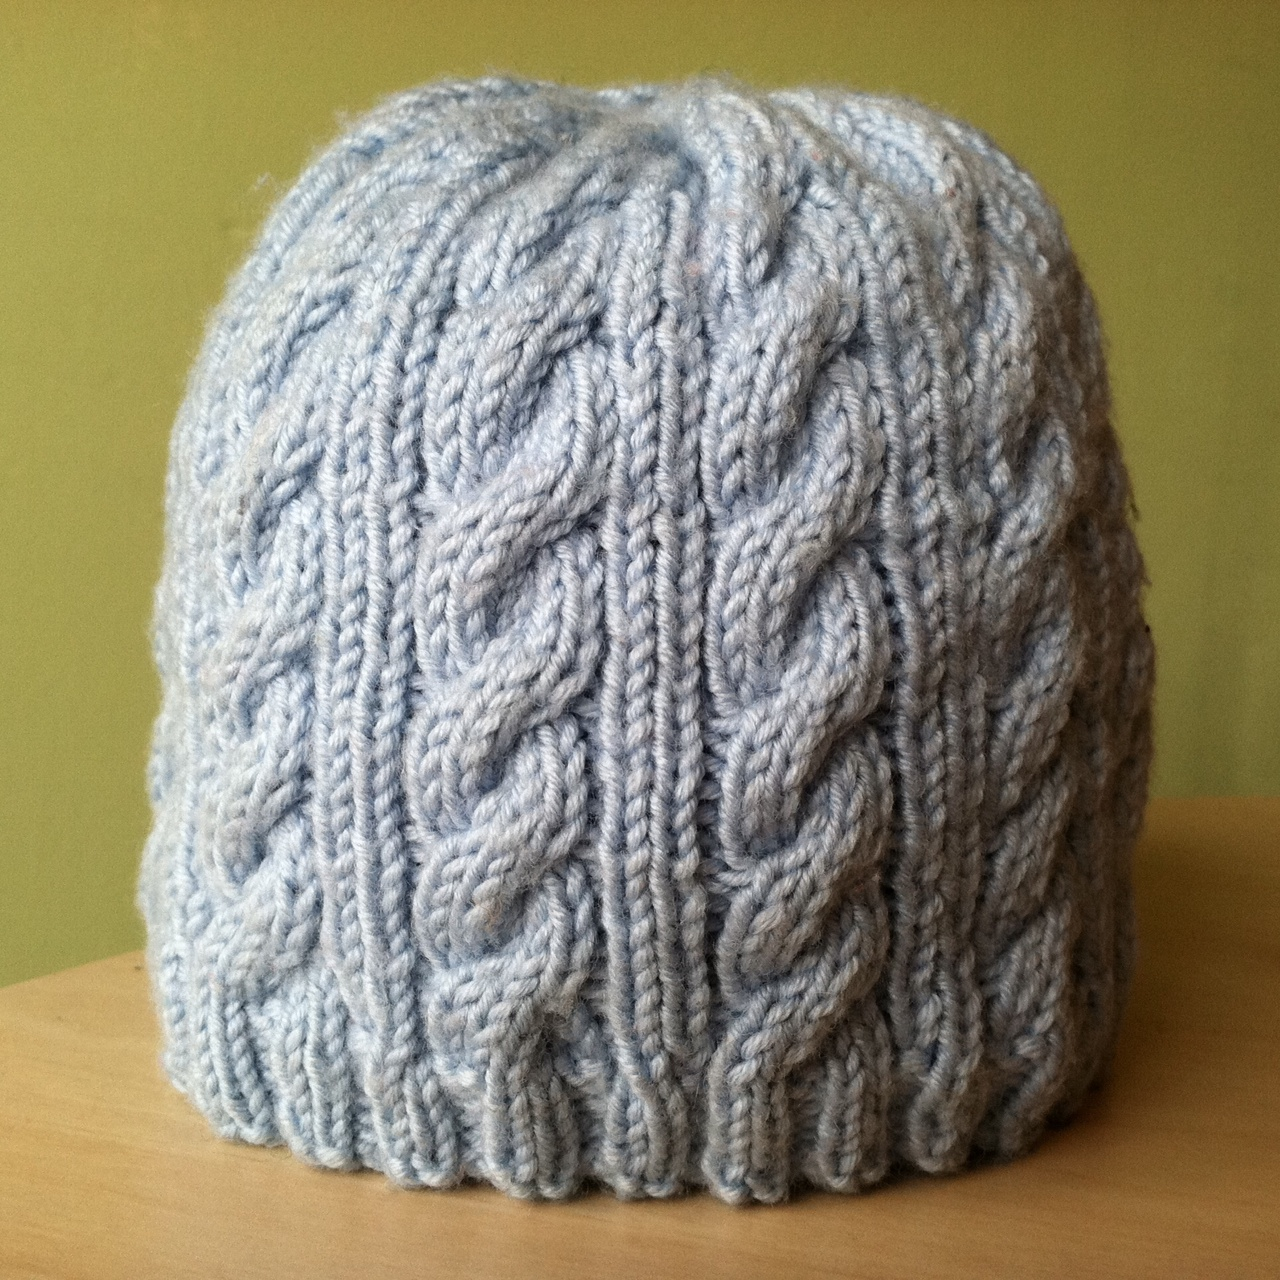 Knitting Hat Patterns Easy : The Yarn Garden Blog: Upcoming Class: Easy Baby Cable Knit Hat